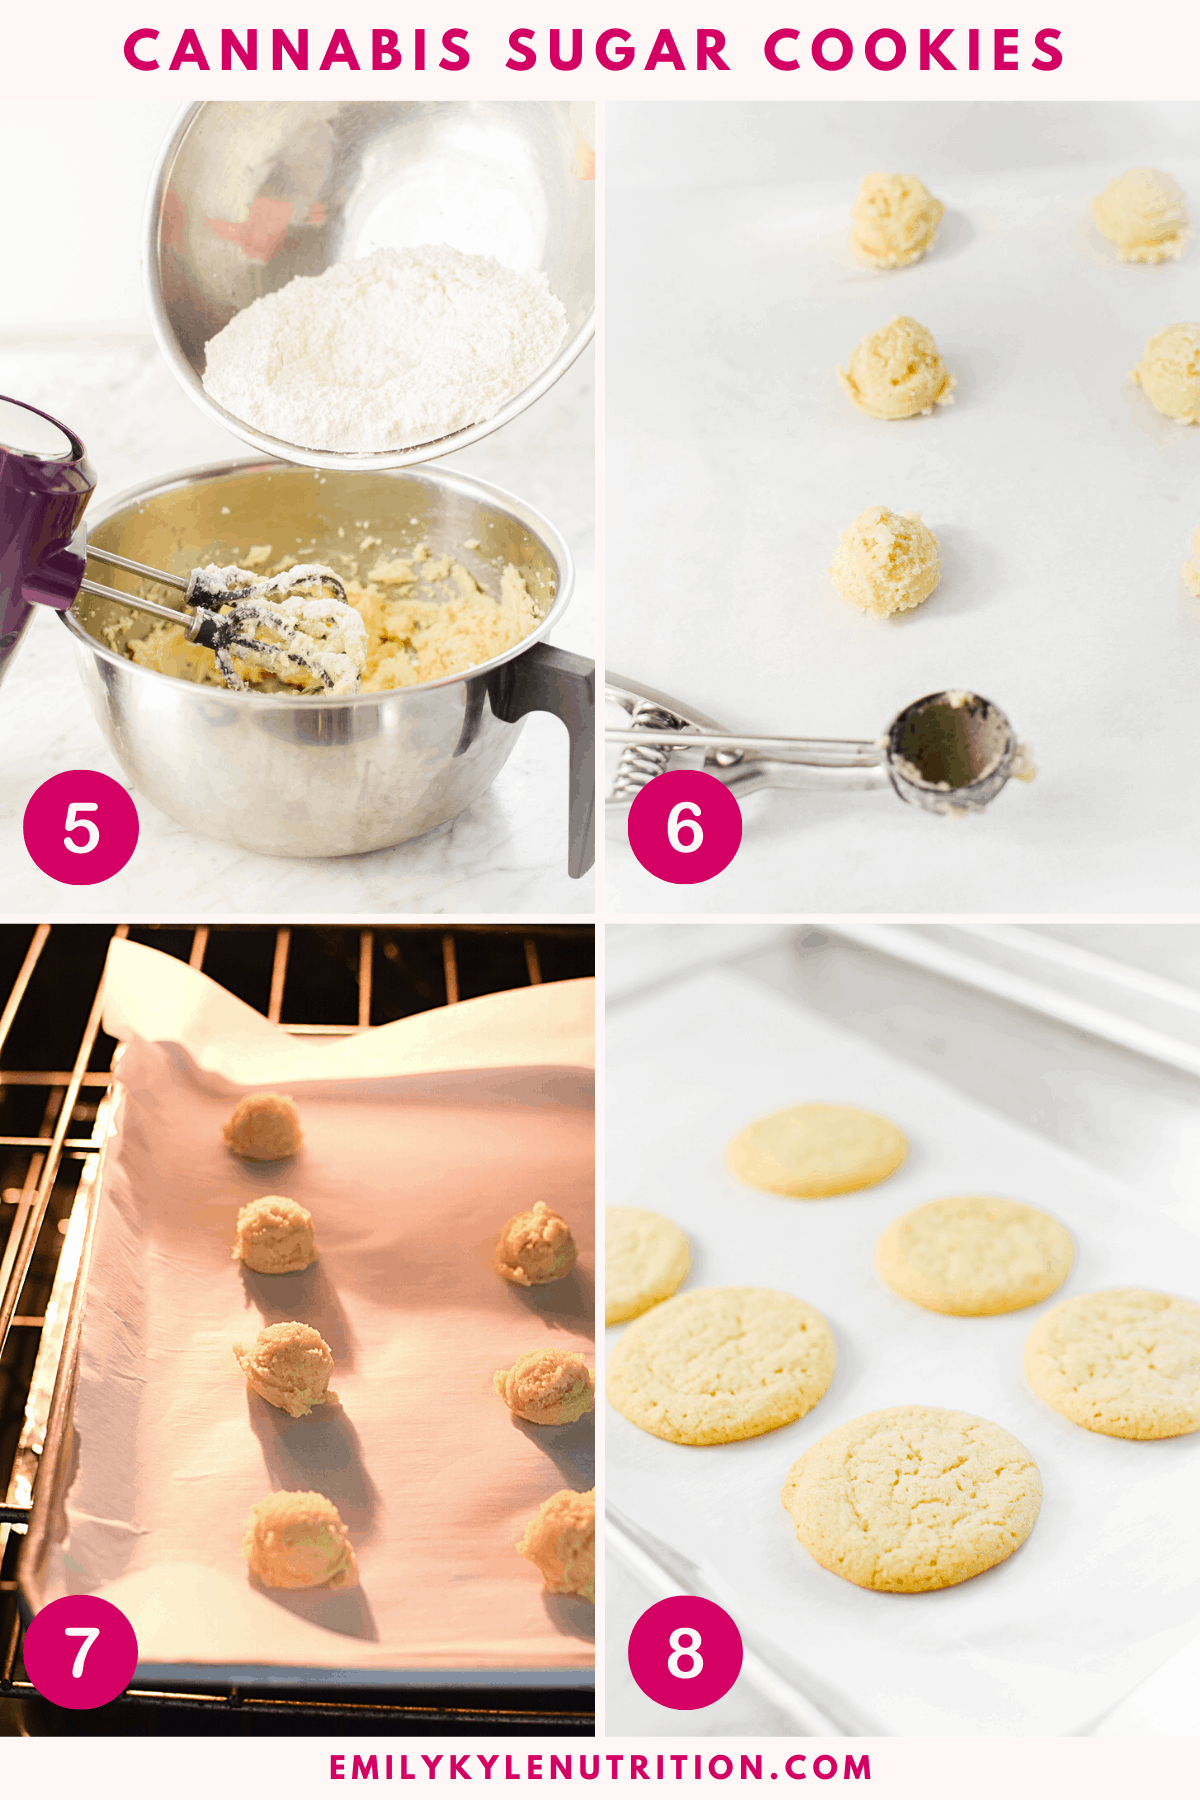 A collage of images showing steps 5-9 for making cannabis chocolate chip cookies including beating the ingredients, sifting the dry ingredients in, beating again, scooping out the dough, baking in the oven, and the final product.